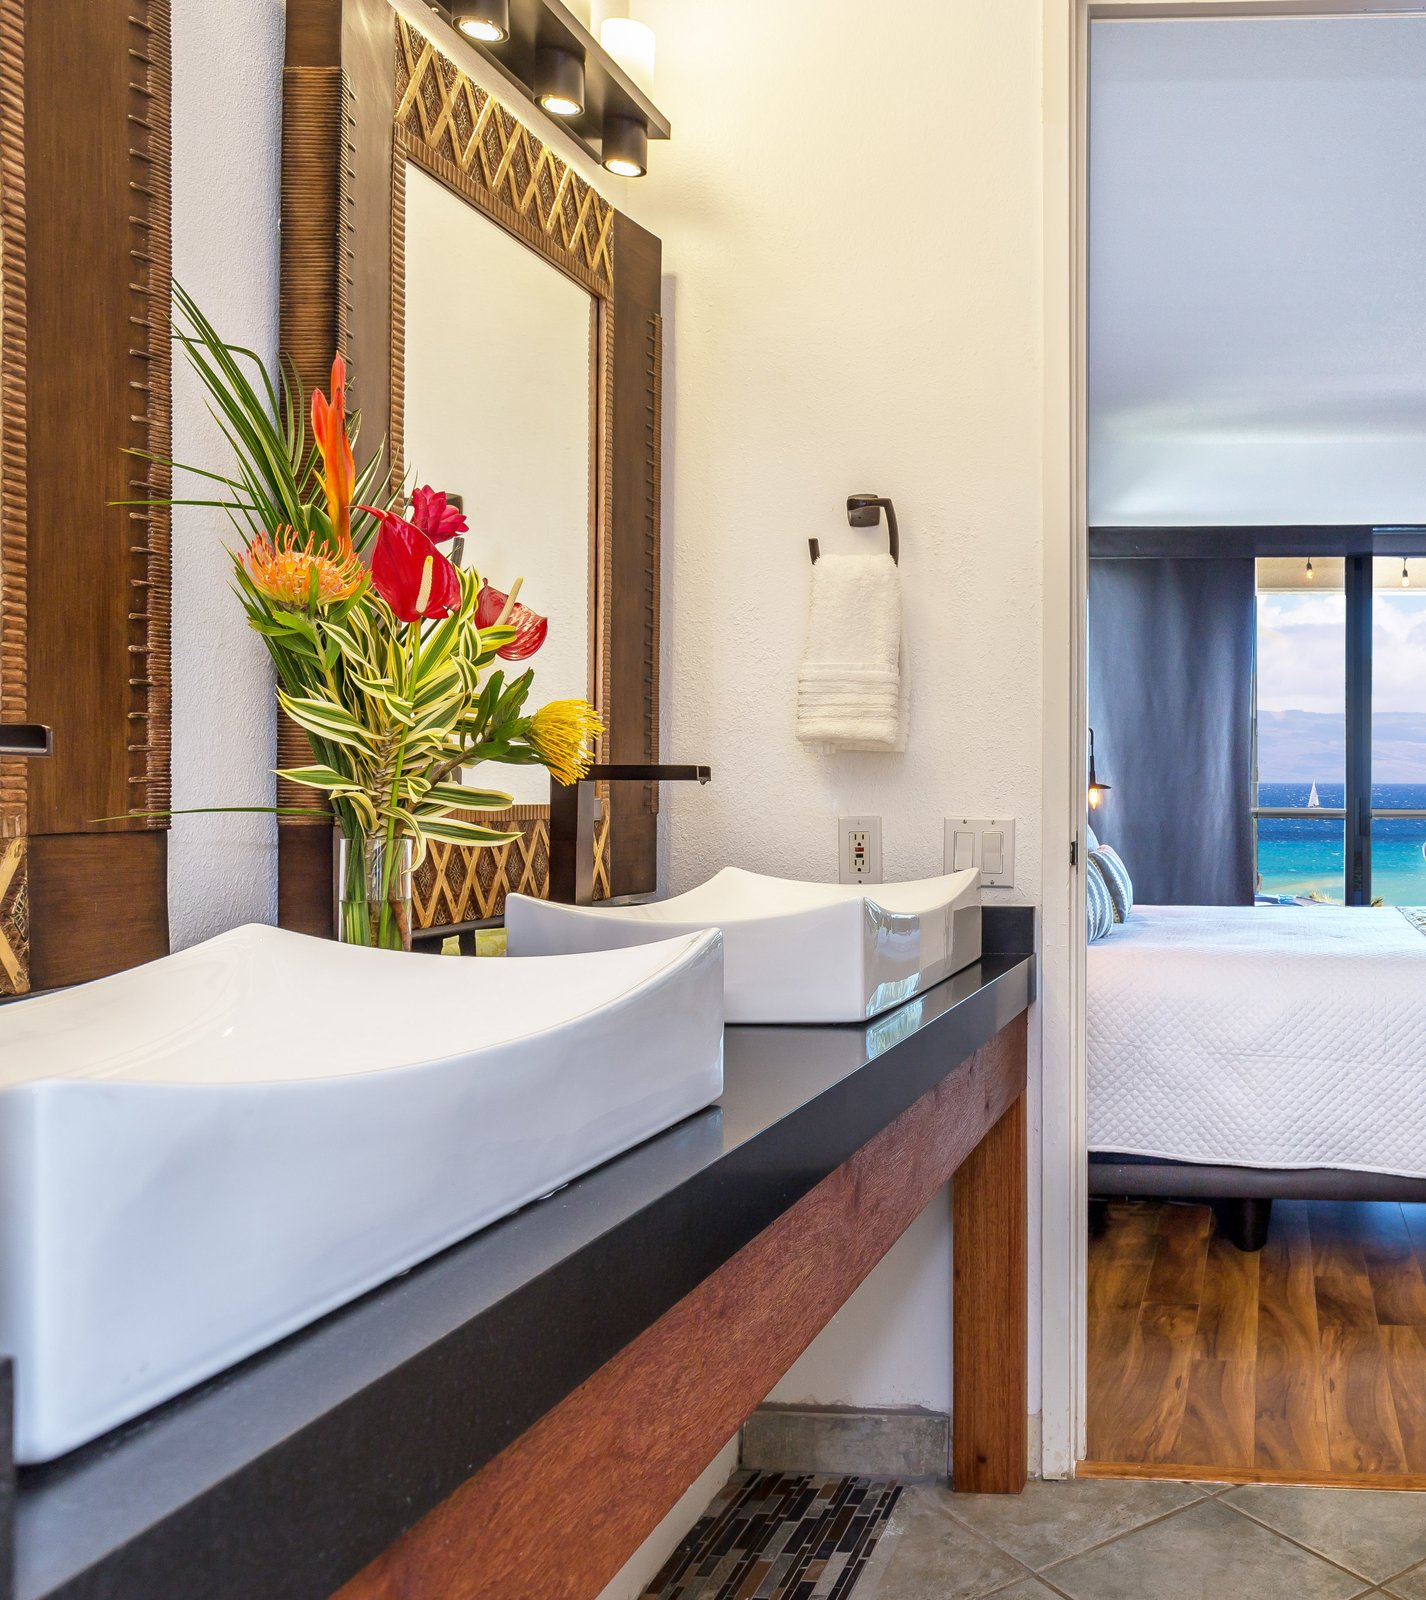 Bath Room, Wall Lighting, Granite Counter, Open Shower, Vessel Sink, Concrete Wall, Full Shower, One Piece Toilet, Soaking Tub, and Ceramic Tile Floor Custom vanity with vintage Hawai'ian mirrors bring together the old and the new.   Maui Modern, Budget-Luxury Remodeled Vacation Rental